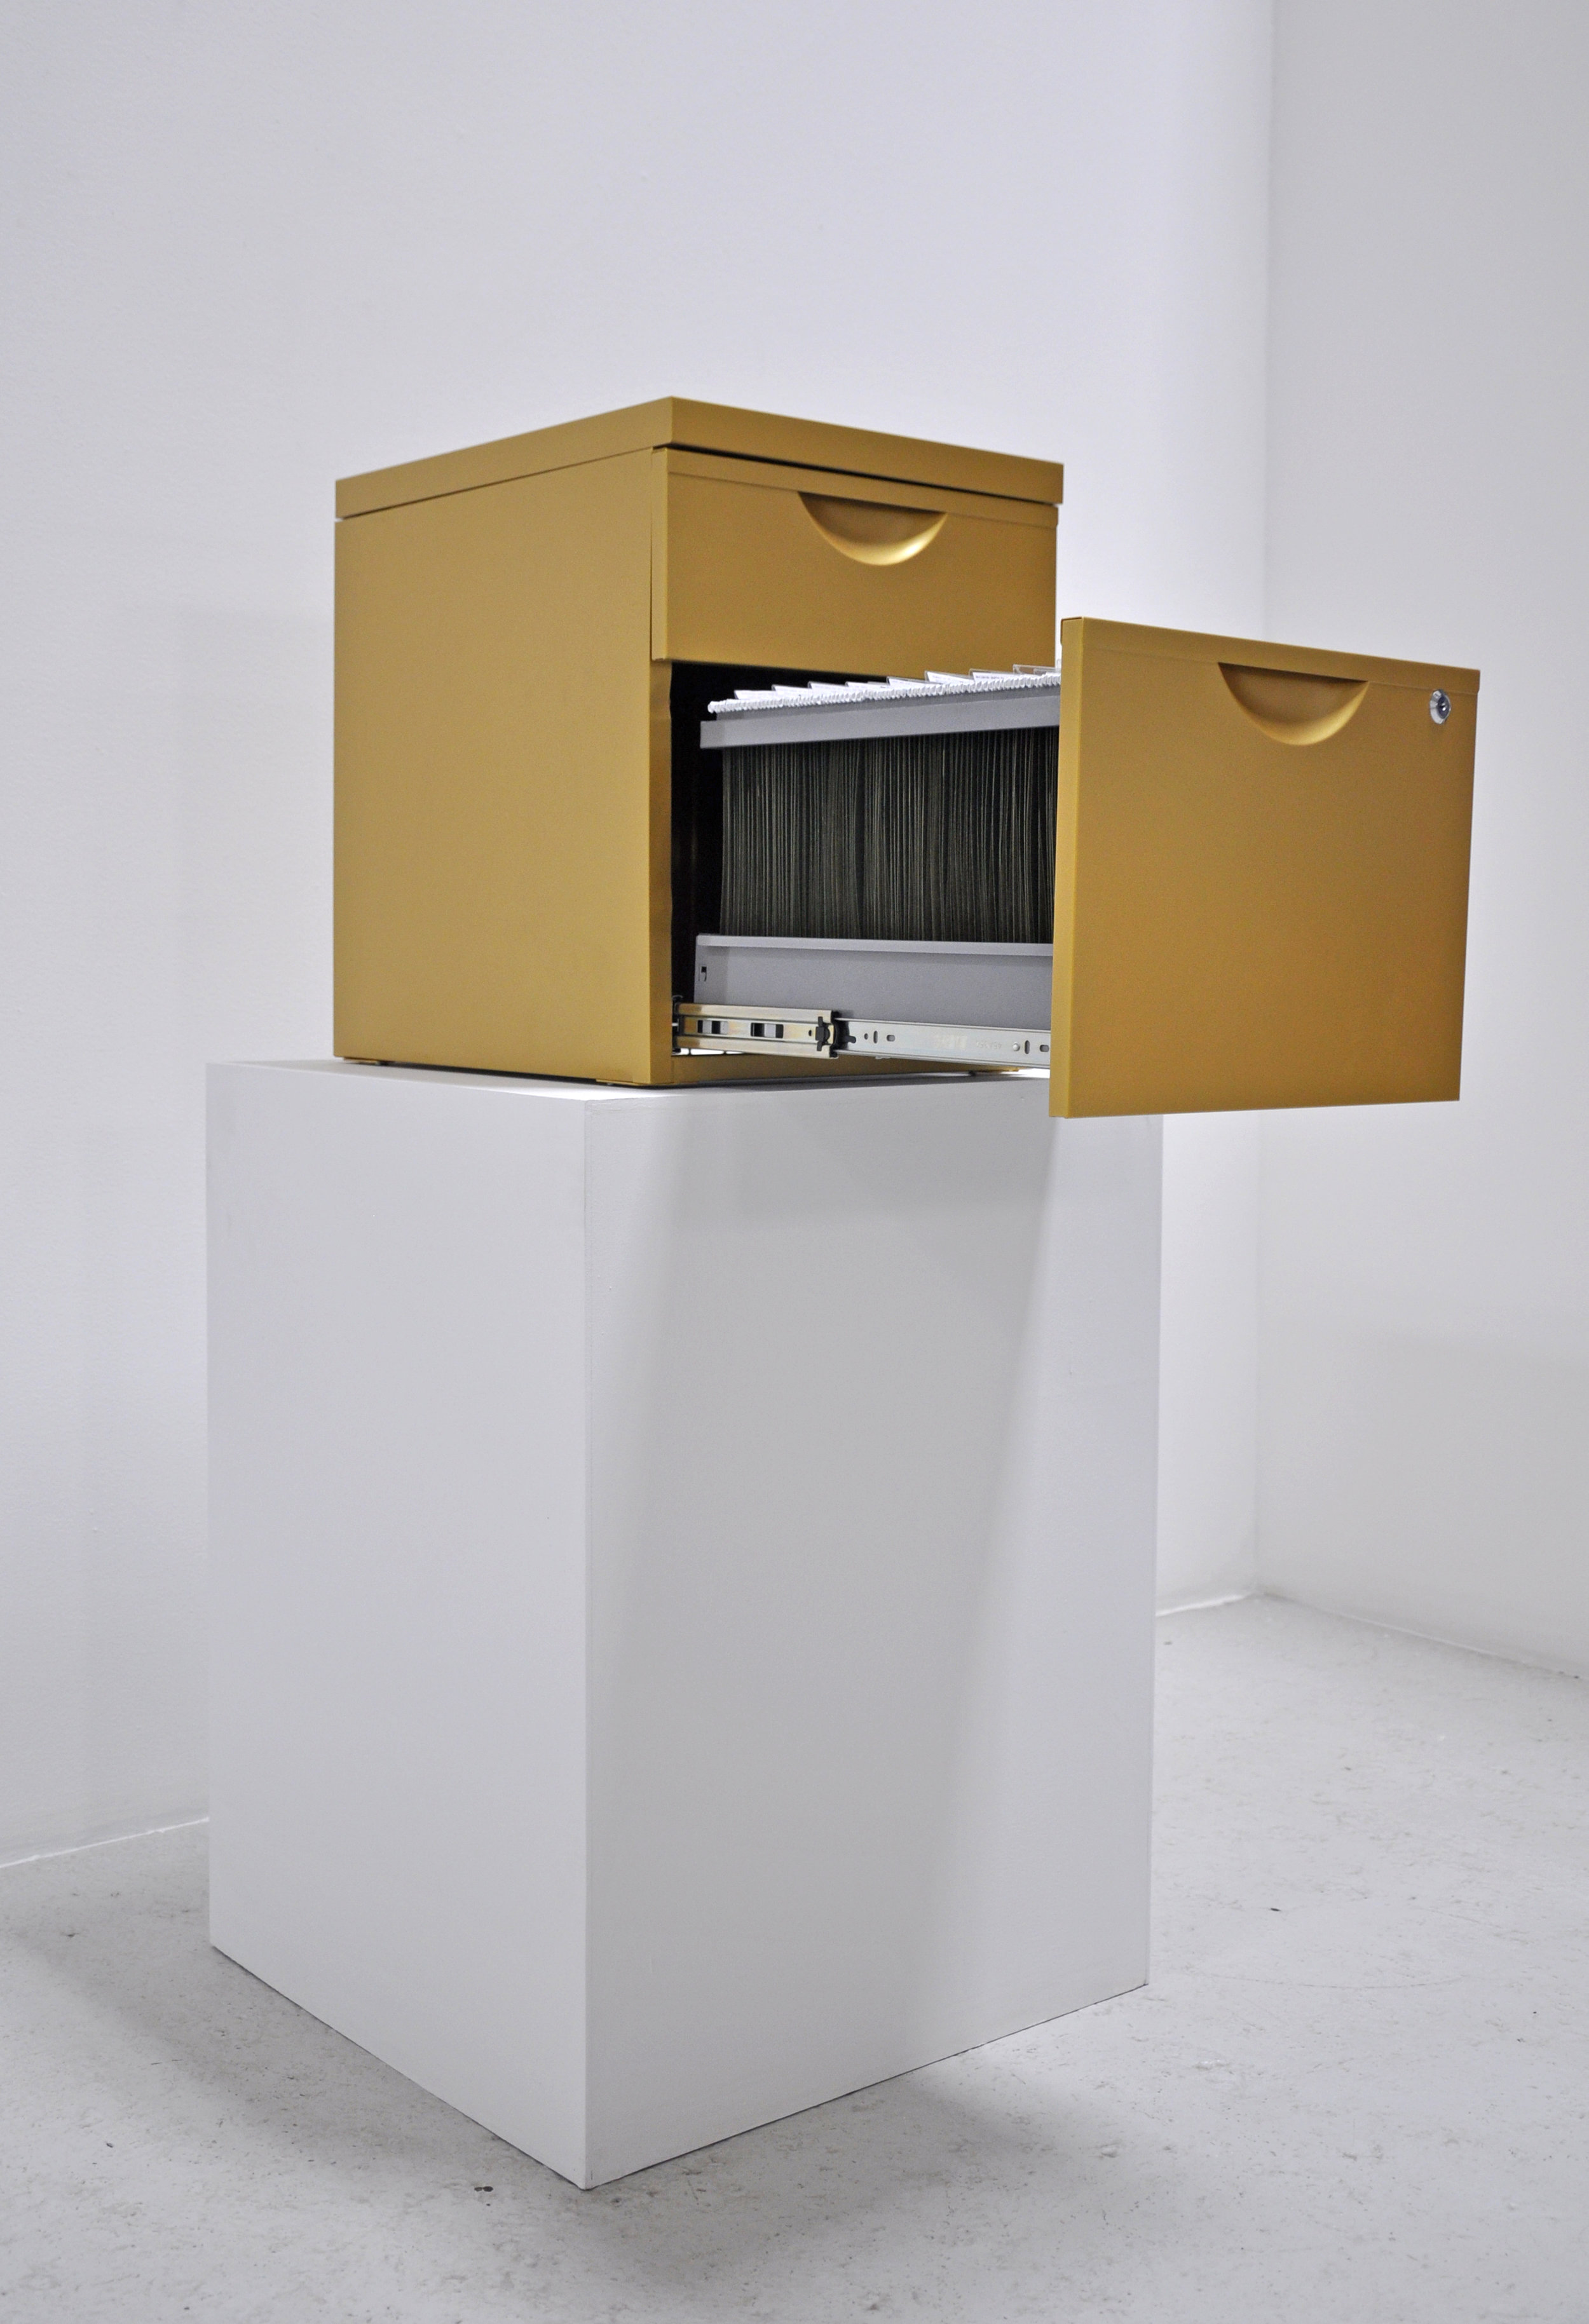 Mimi Onuoha, The Library of Missed Datasets, Steel Filing Cabinet, 16 x 19.5 x 22.5 in, 2018